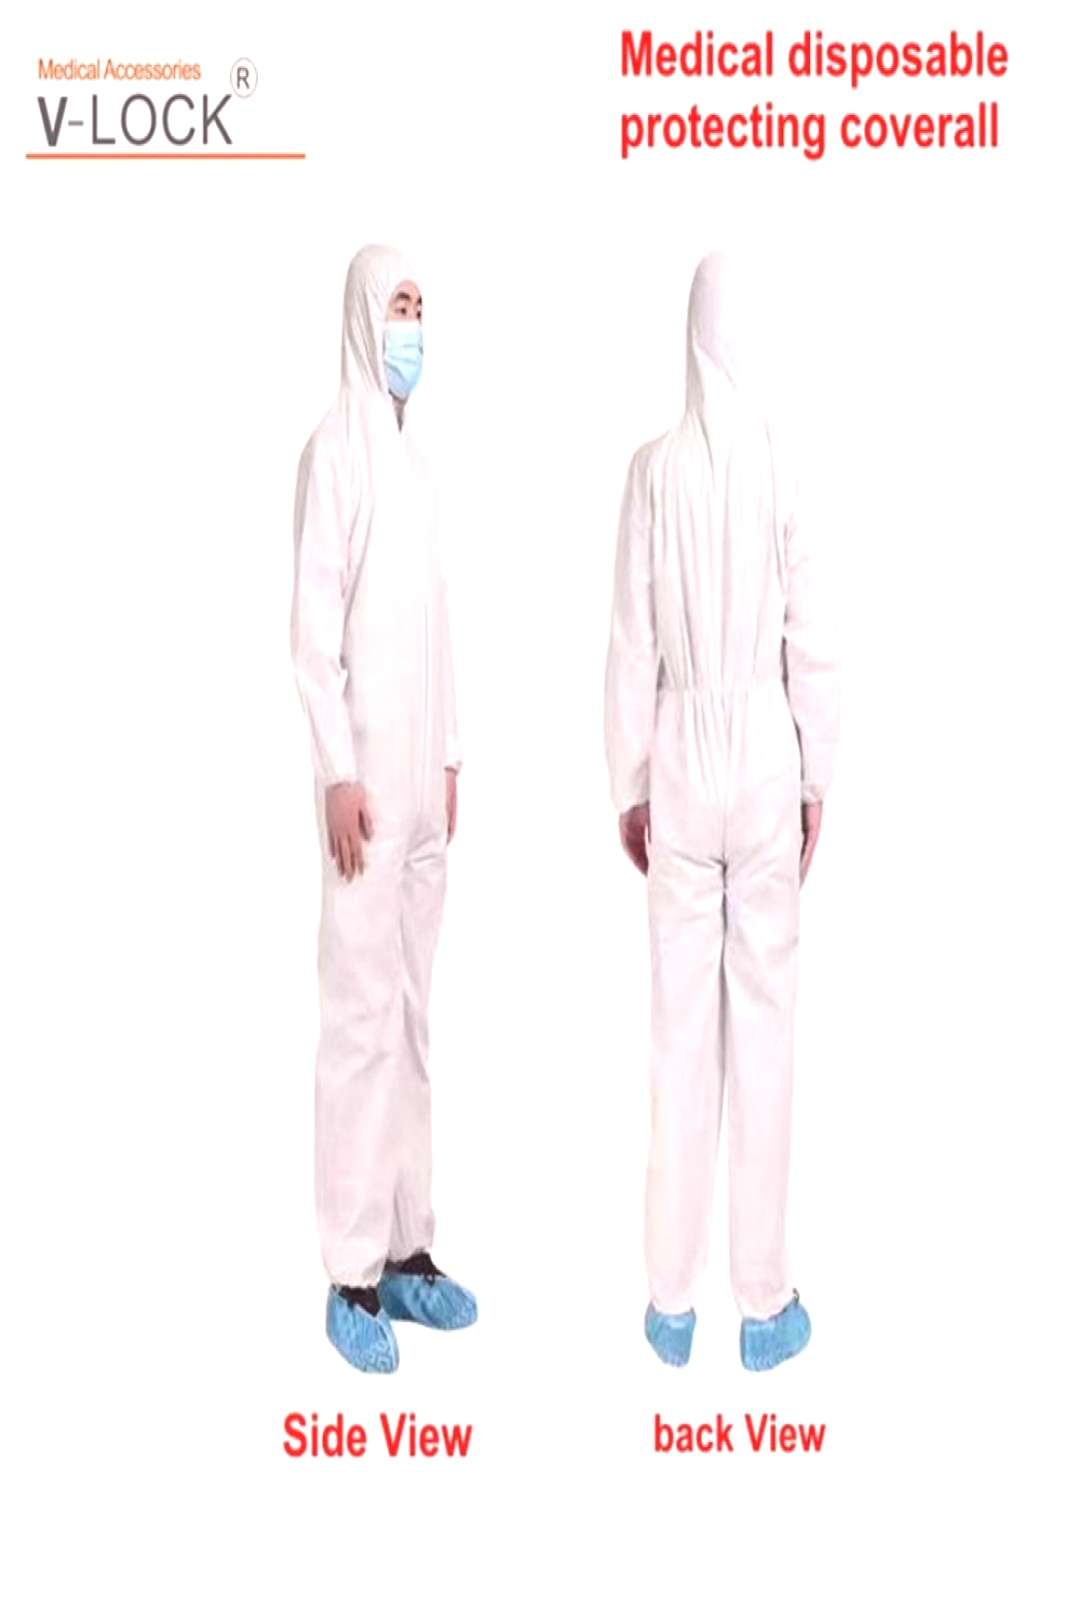 disposable medical protecting coverall islation cover 5PCS packing Price: $87.75   {#belugabazaar